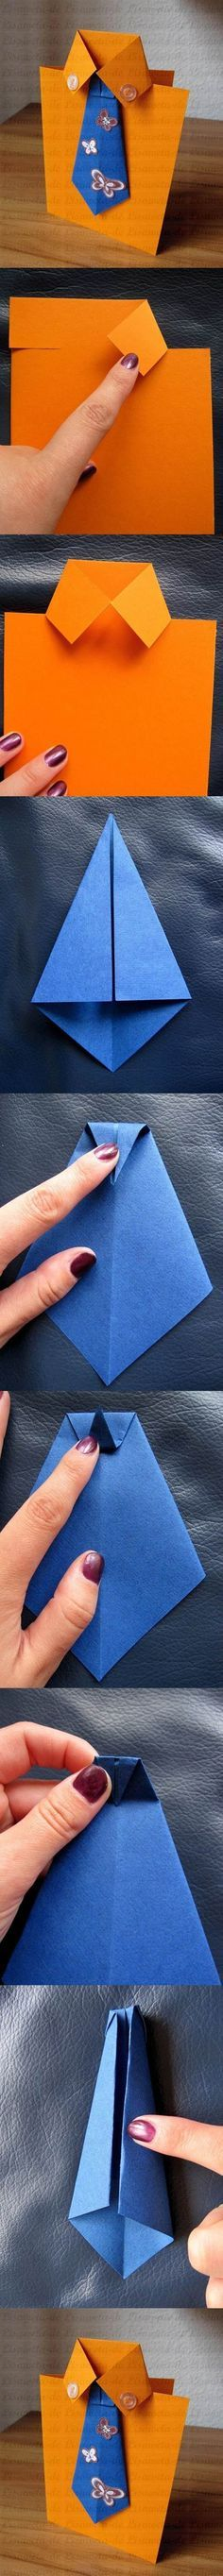 DIY Tie and Shirt Greeting Card | iCreativeIdeas.com Like Us on Facebook == https://www.facebook.com/icreativeideas